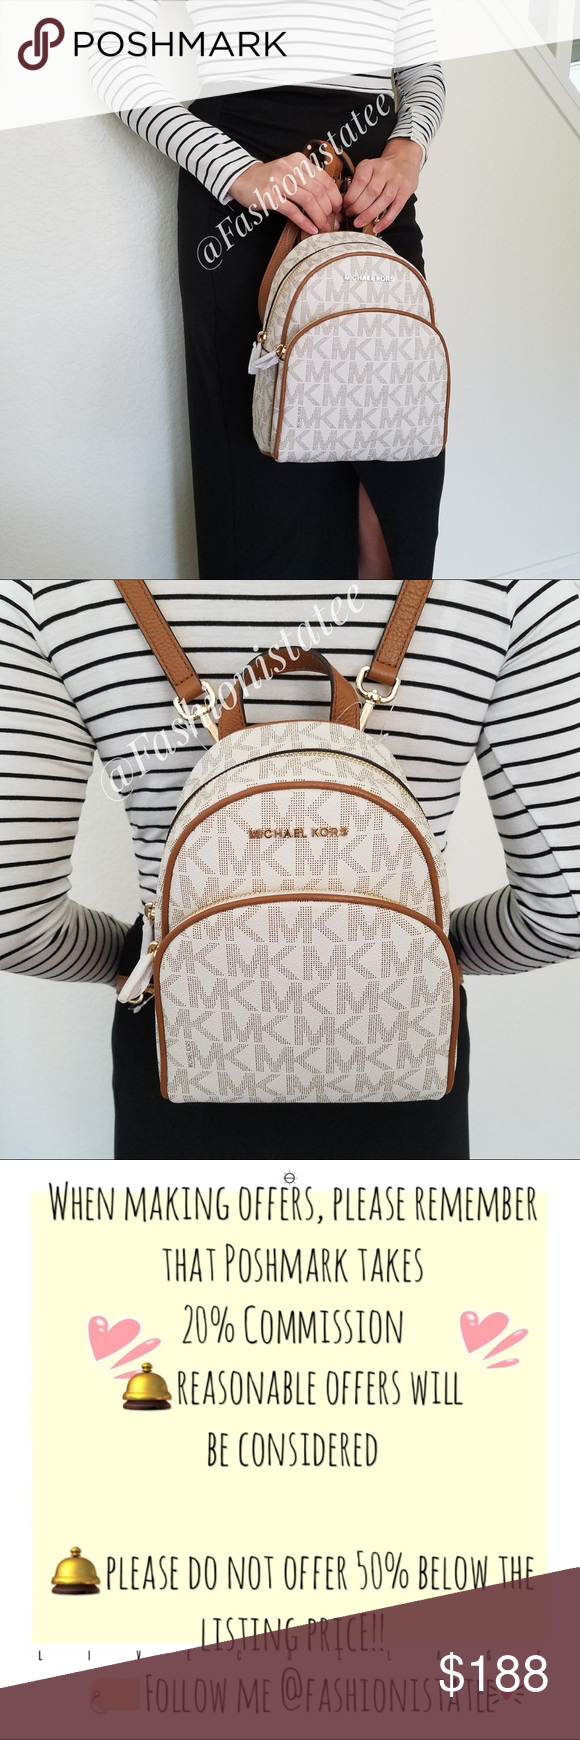 42f149c2d836 NWT MICHAEL KORS ABBEY VANILLA BACKPACK SMALL New With Tag 100% Authentic  This list is